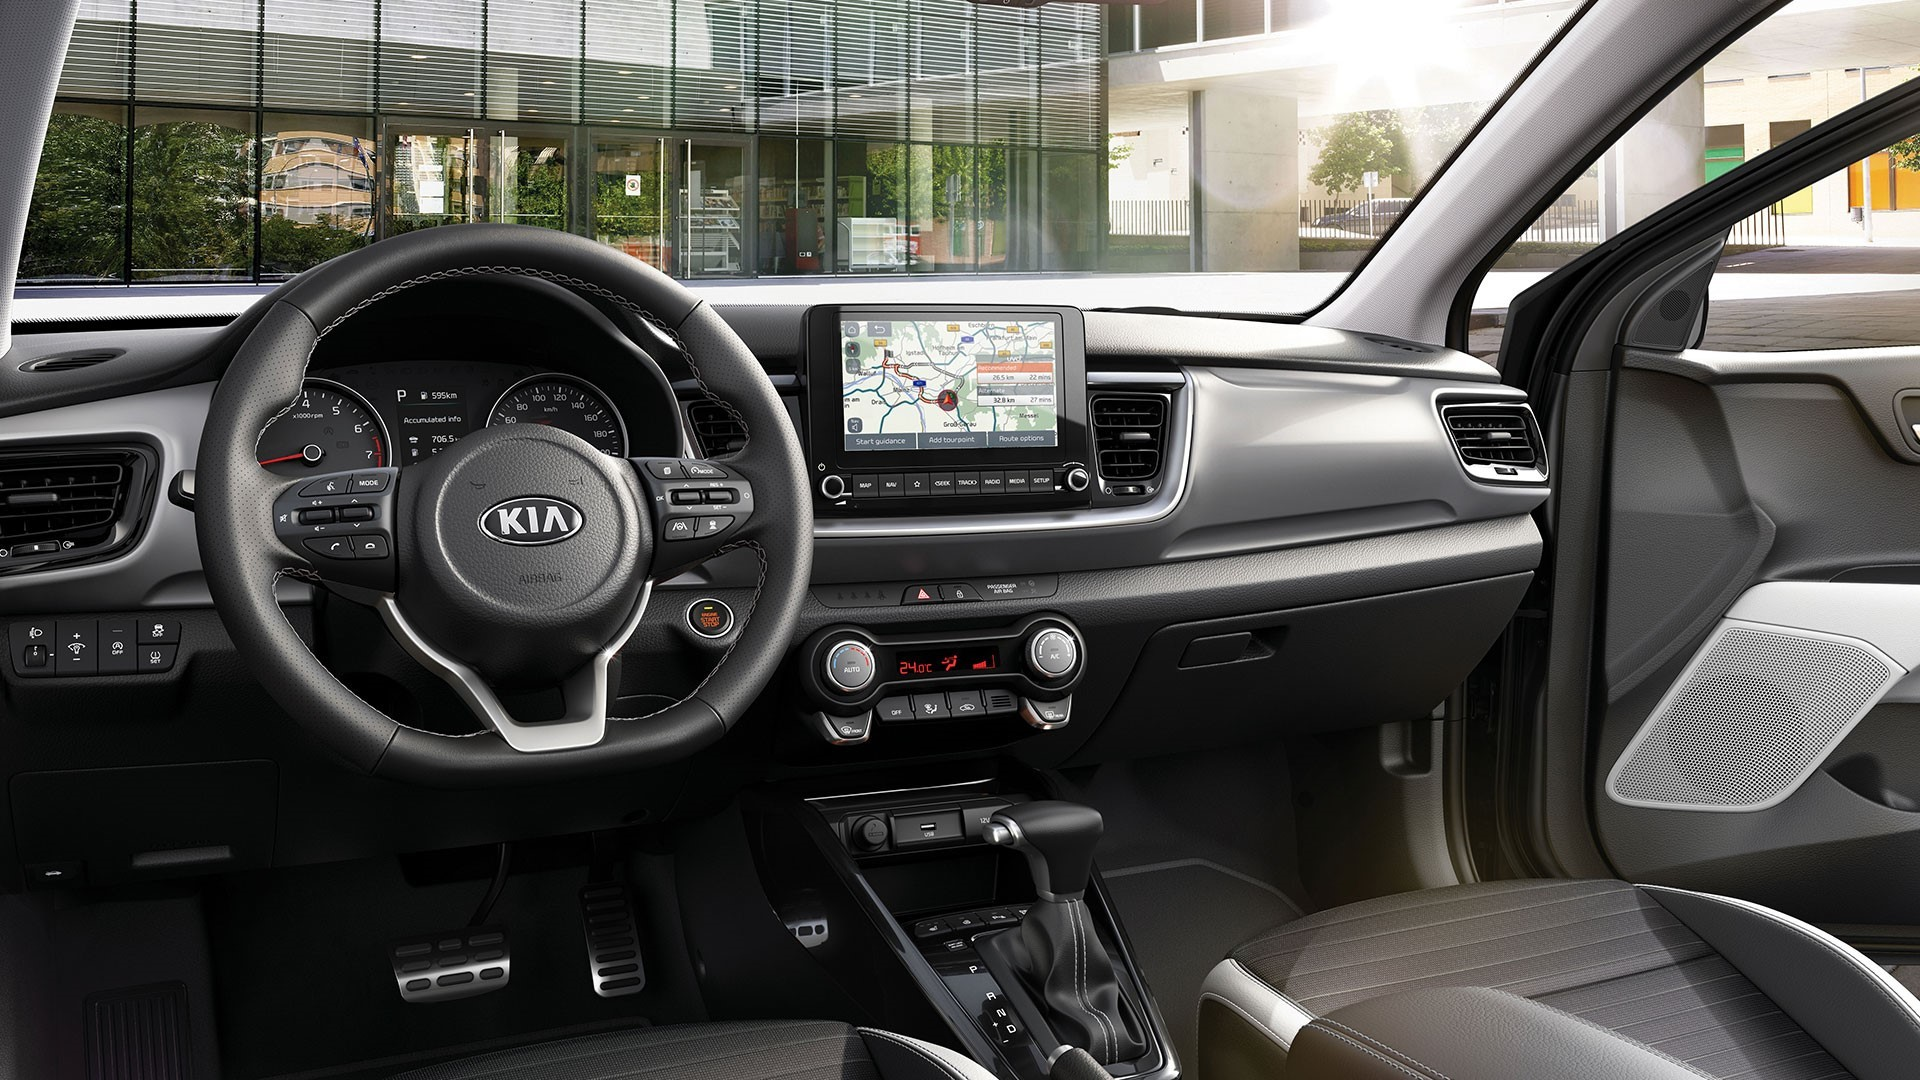 Mild-hybrid power, connectivity and new driver assistance tech for upgraded Kia Stonic - Image 1